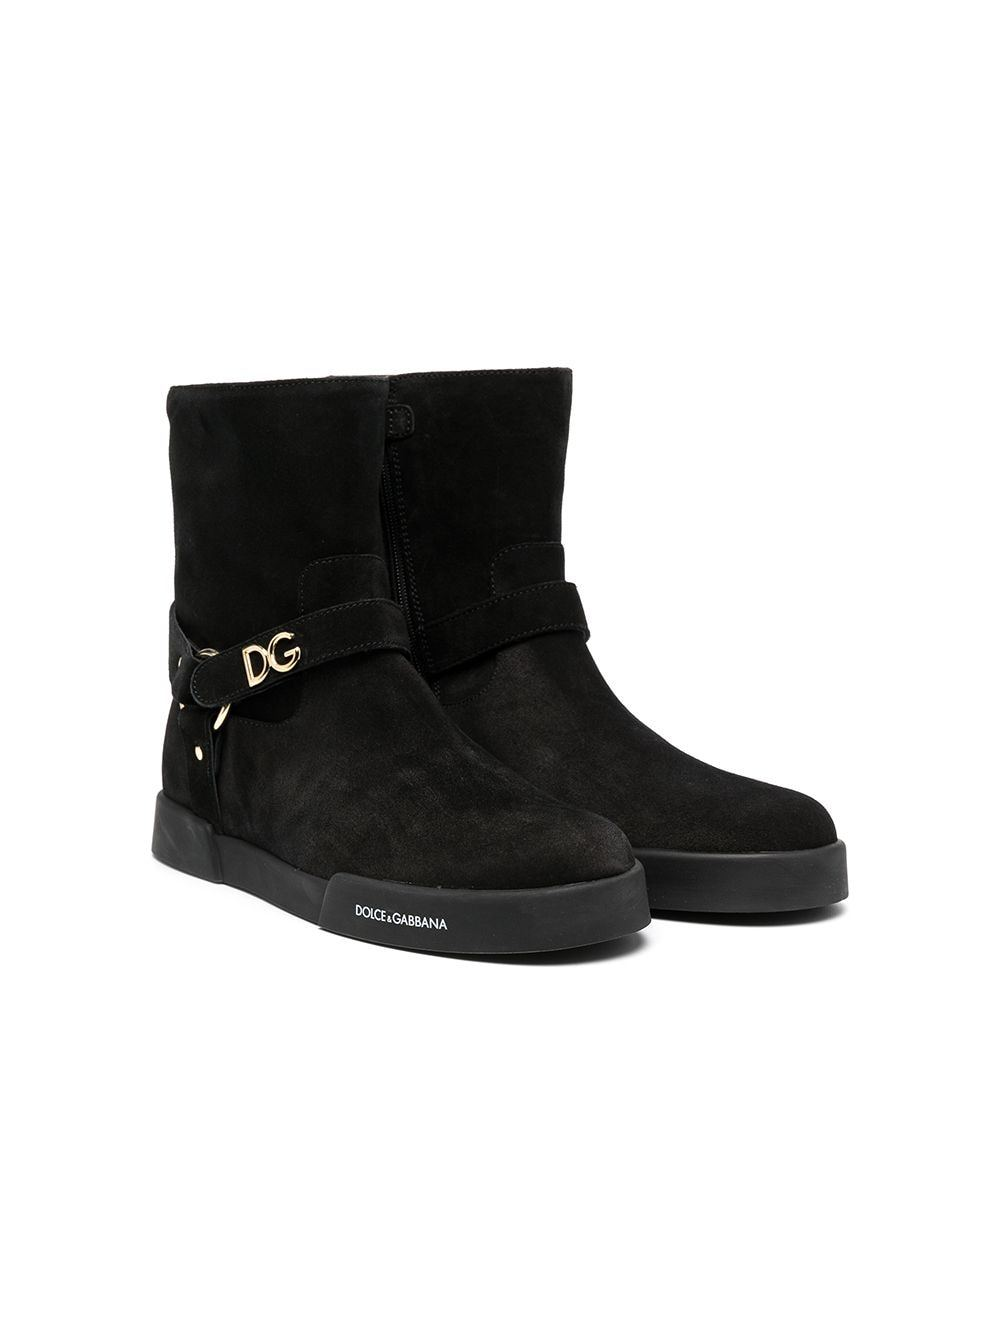 DOLCE & GABBANA KIDS Plaque Ankle Boots Black